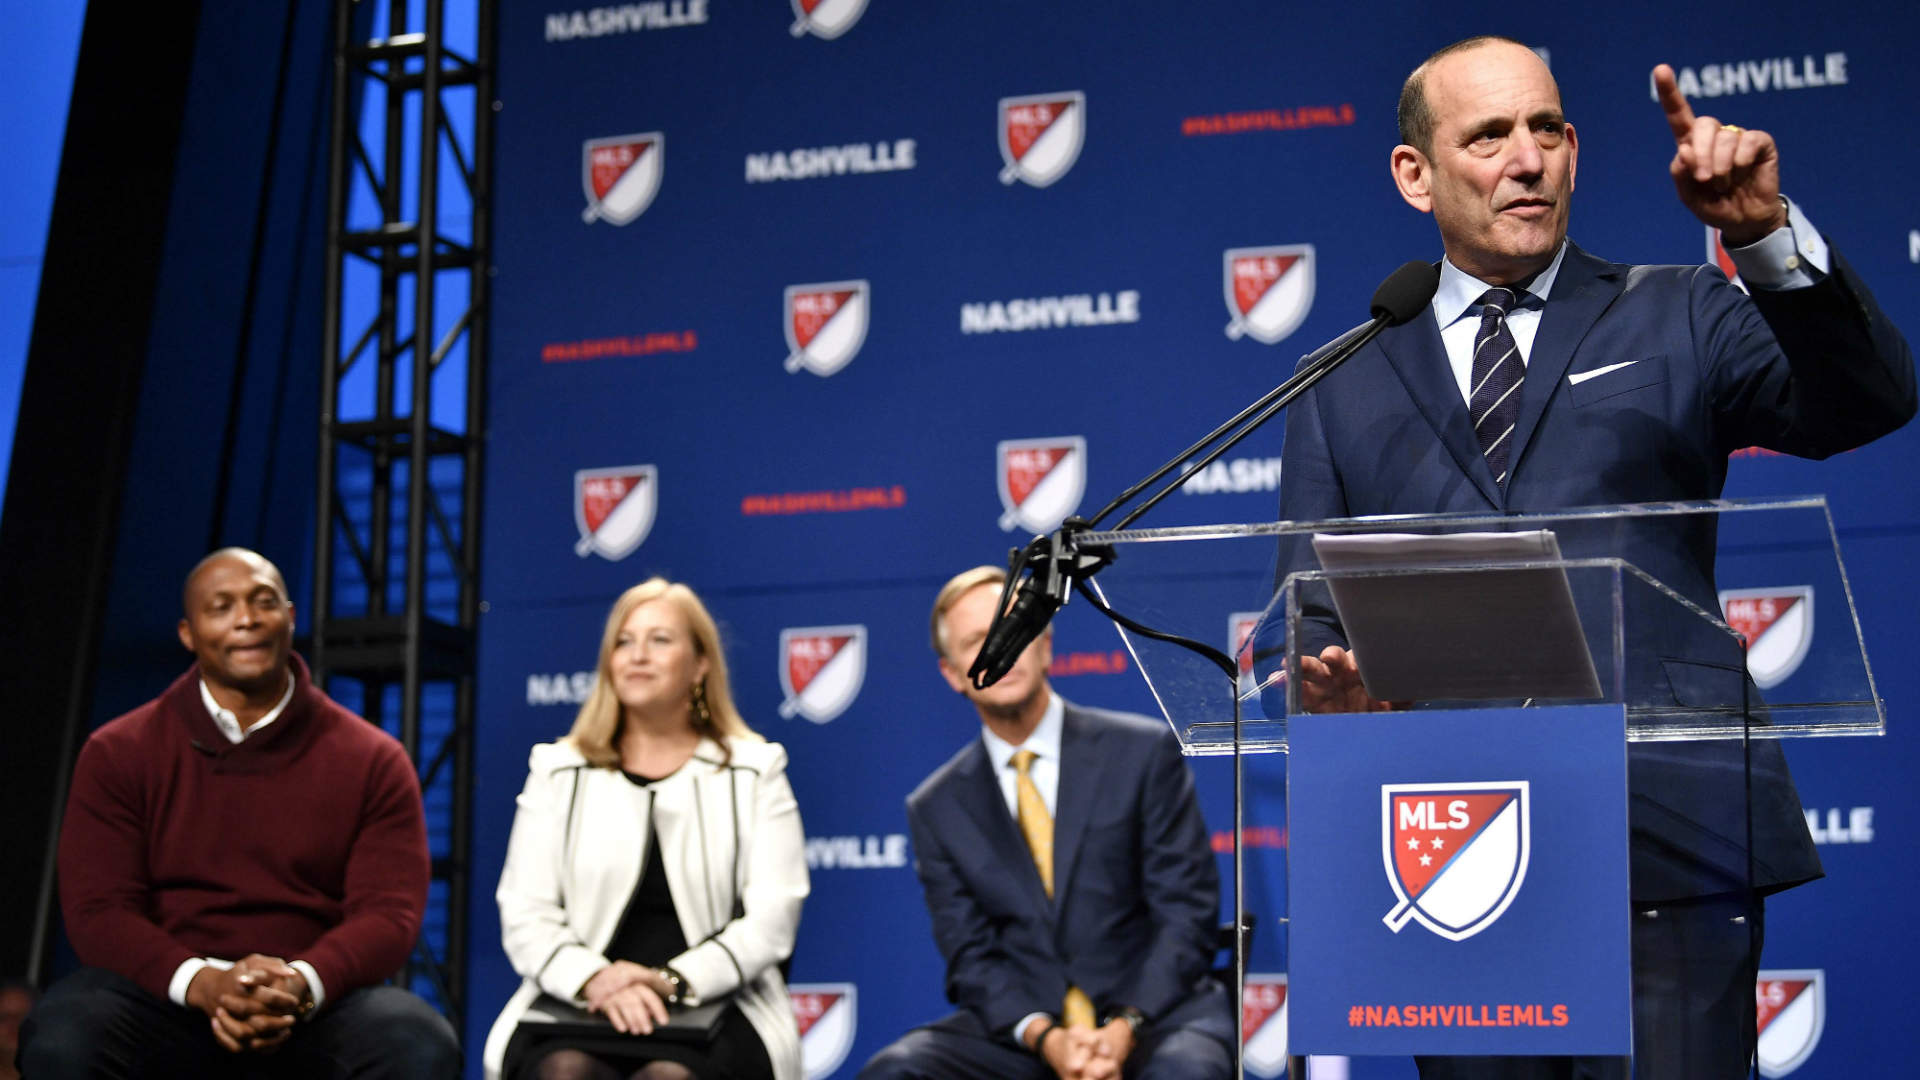 MLS: Nashville named as 24th franchise, in competition's latest expansion